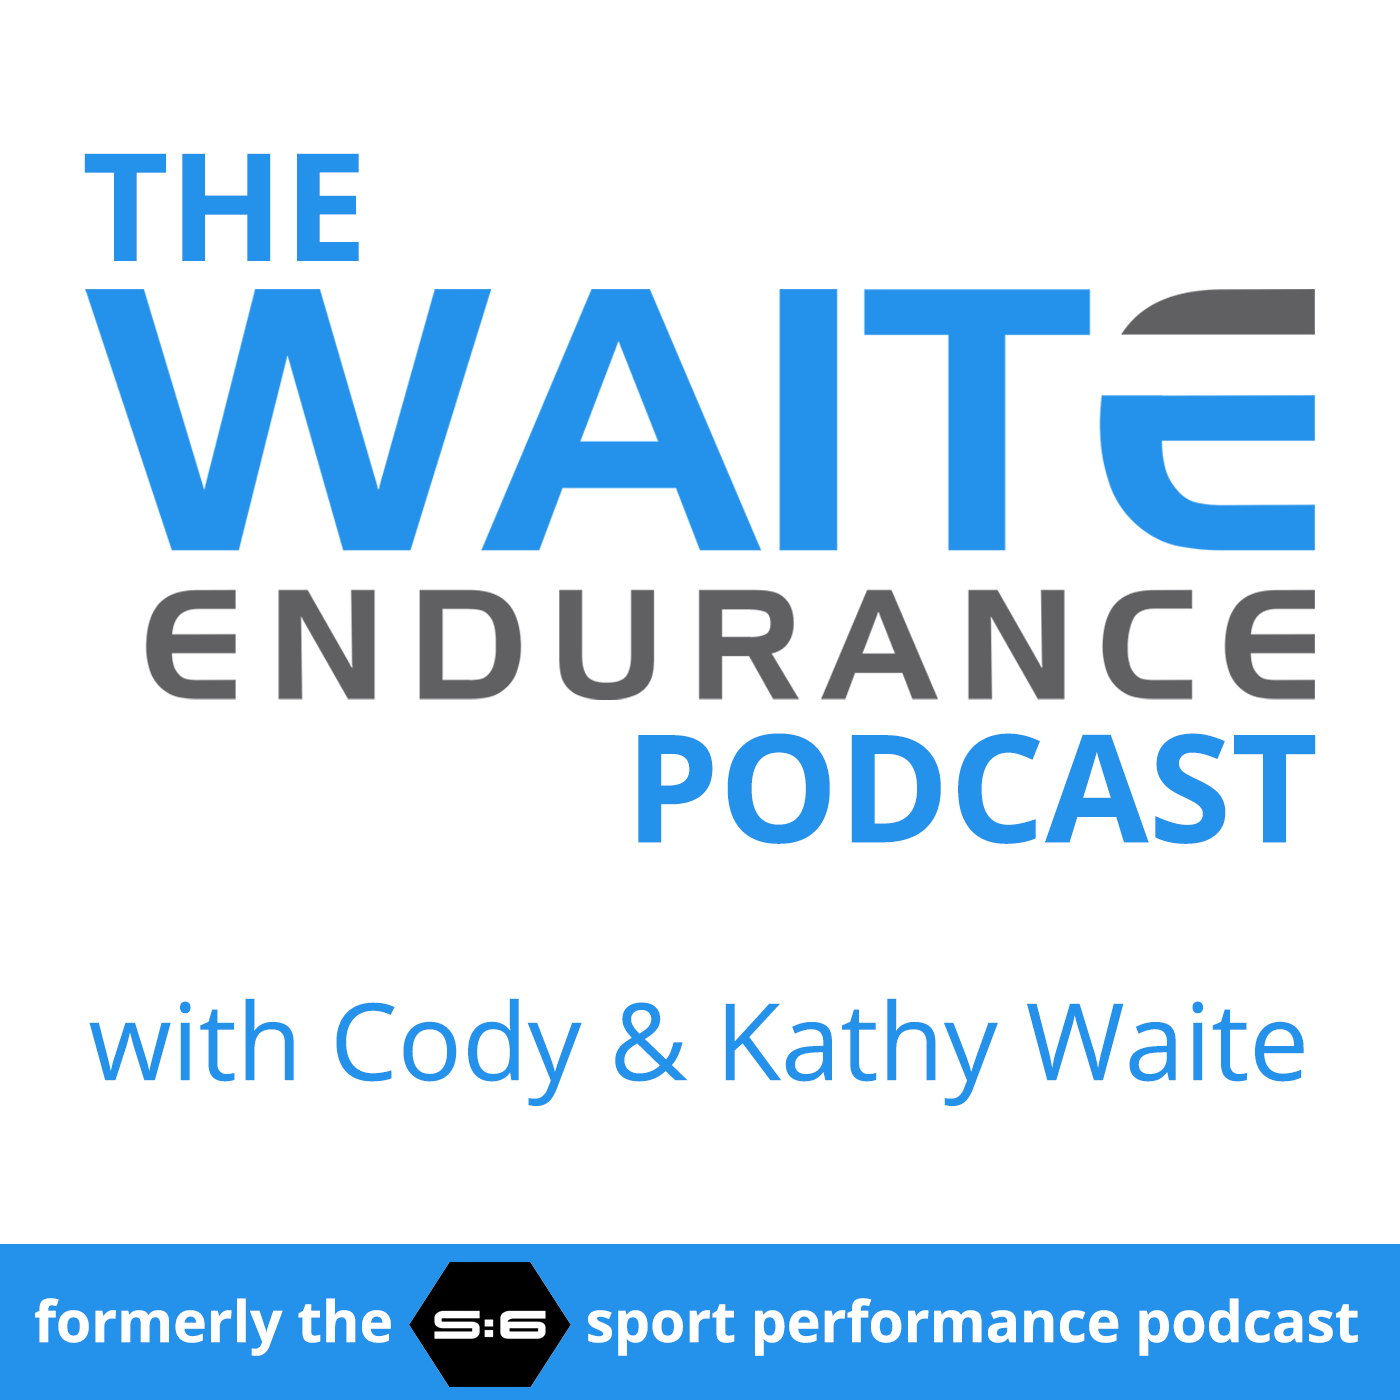 Episode 35: Interval Training, Keeping It Simple